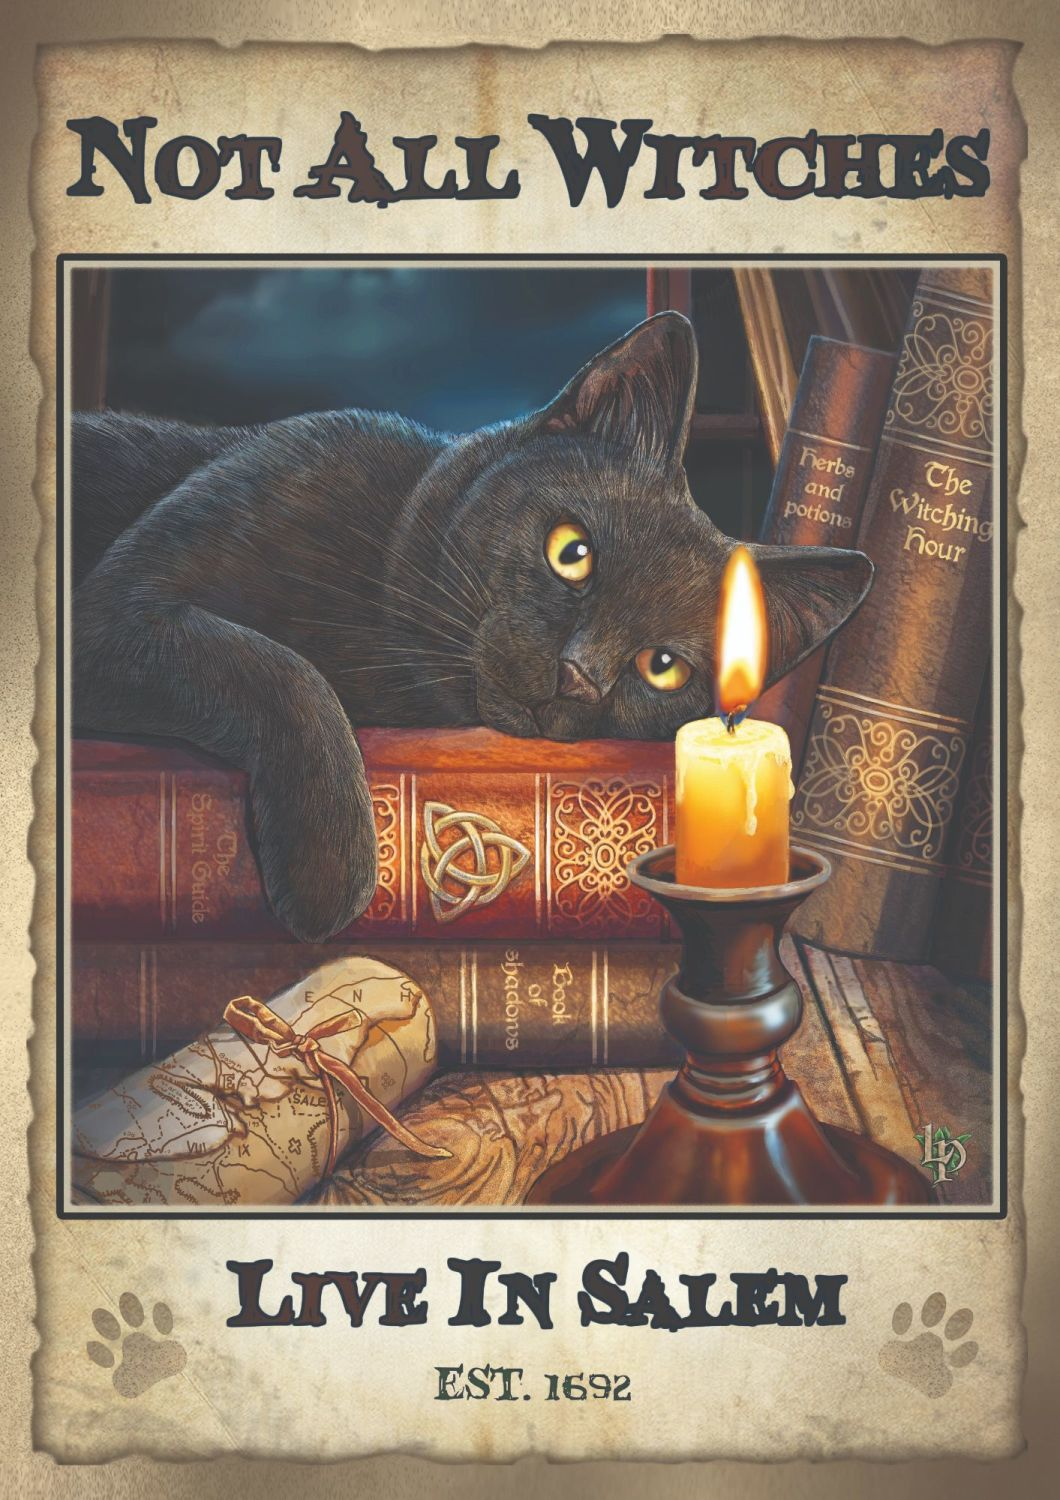 Witching hour print with caption not all witches live in salem A2 size